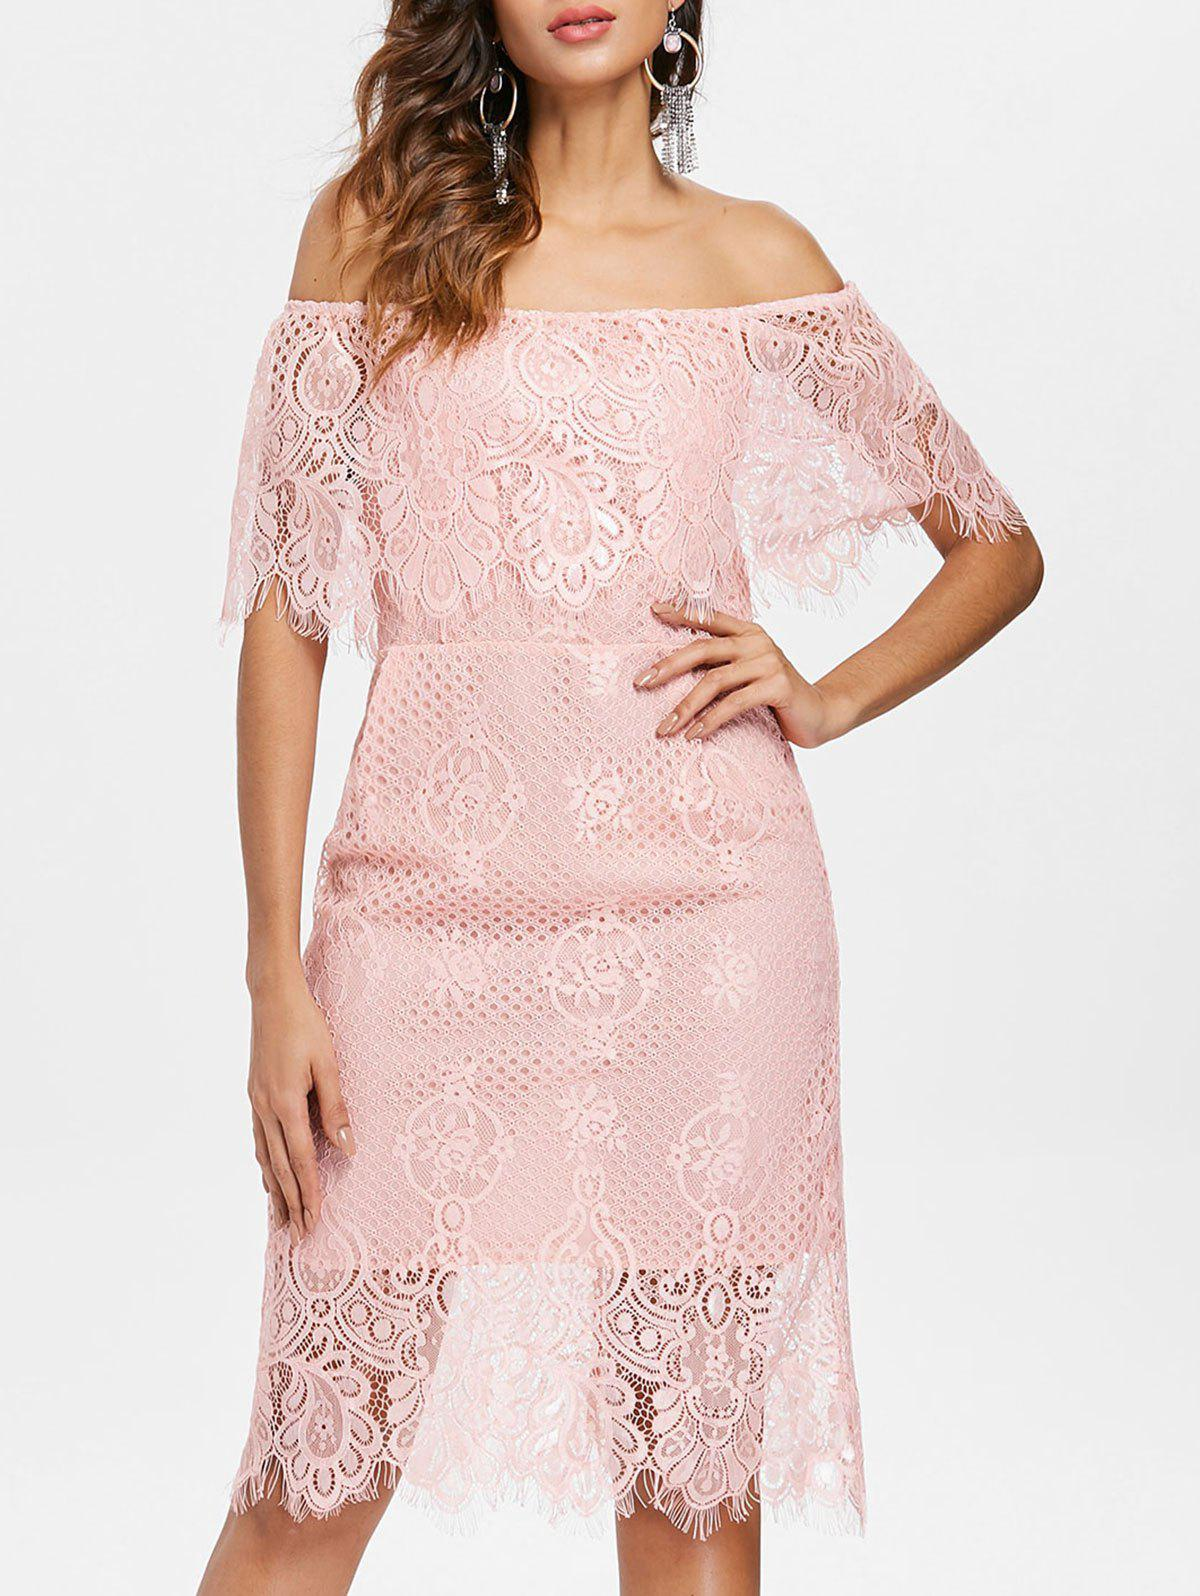 Off Shoulder Ruffled Lace Bodycon Dress - LIGHT PINK M